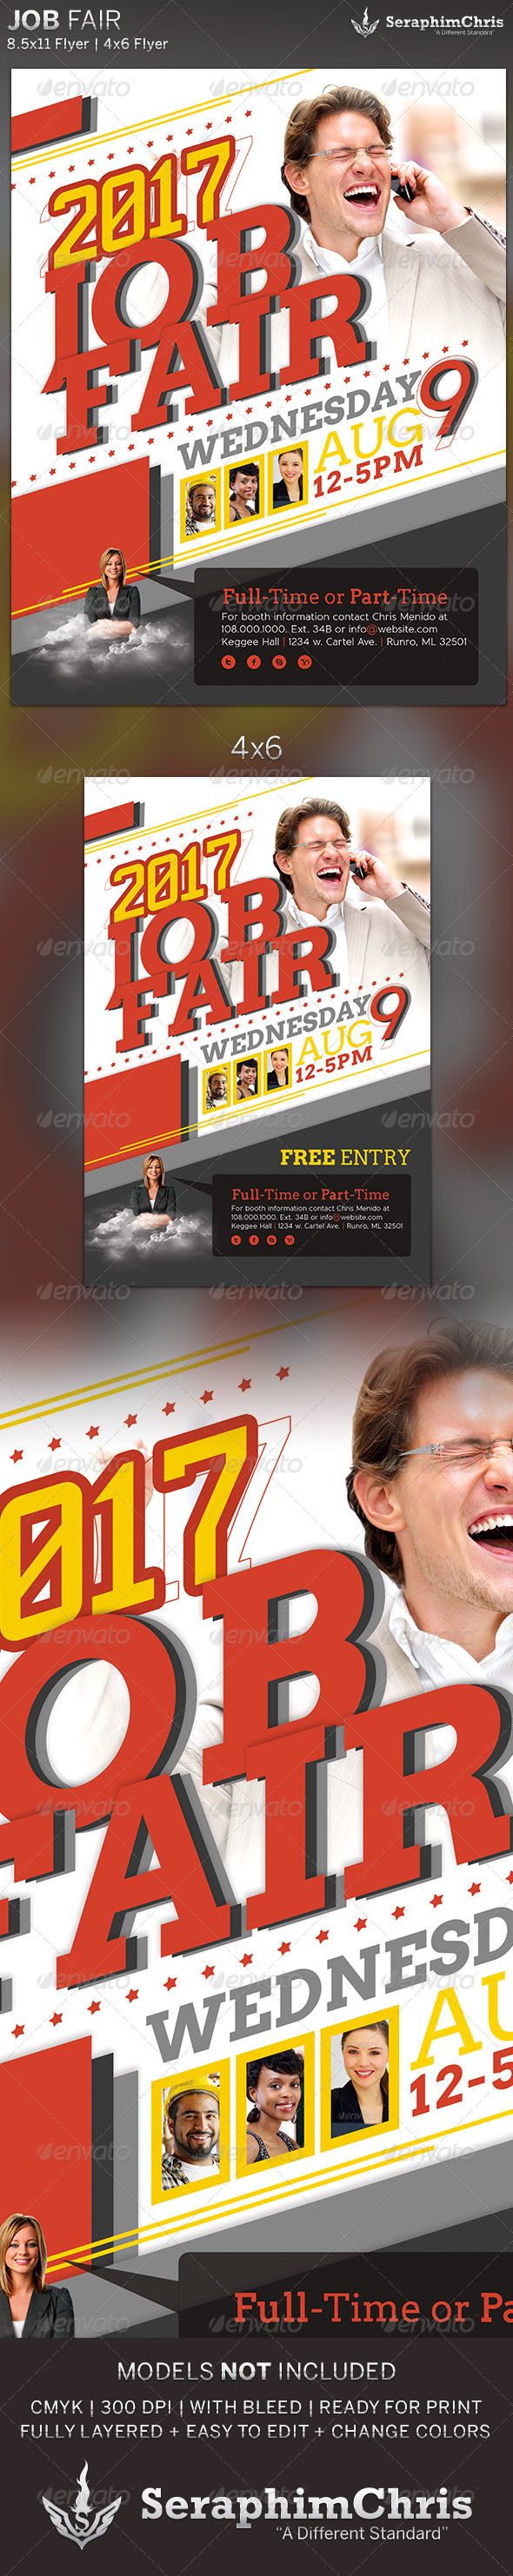 GraphicRiver Job Fair Corporate Flyer Template 5062984